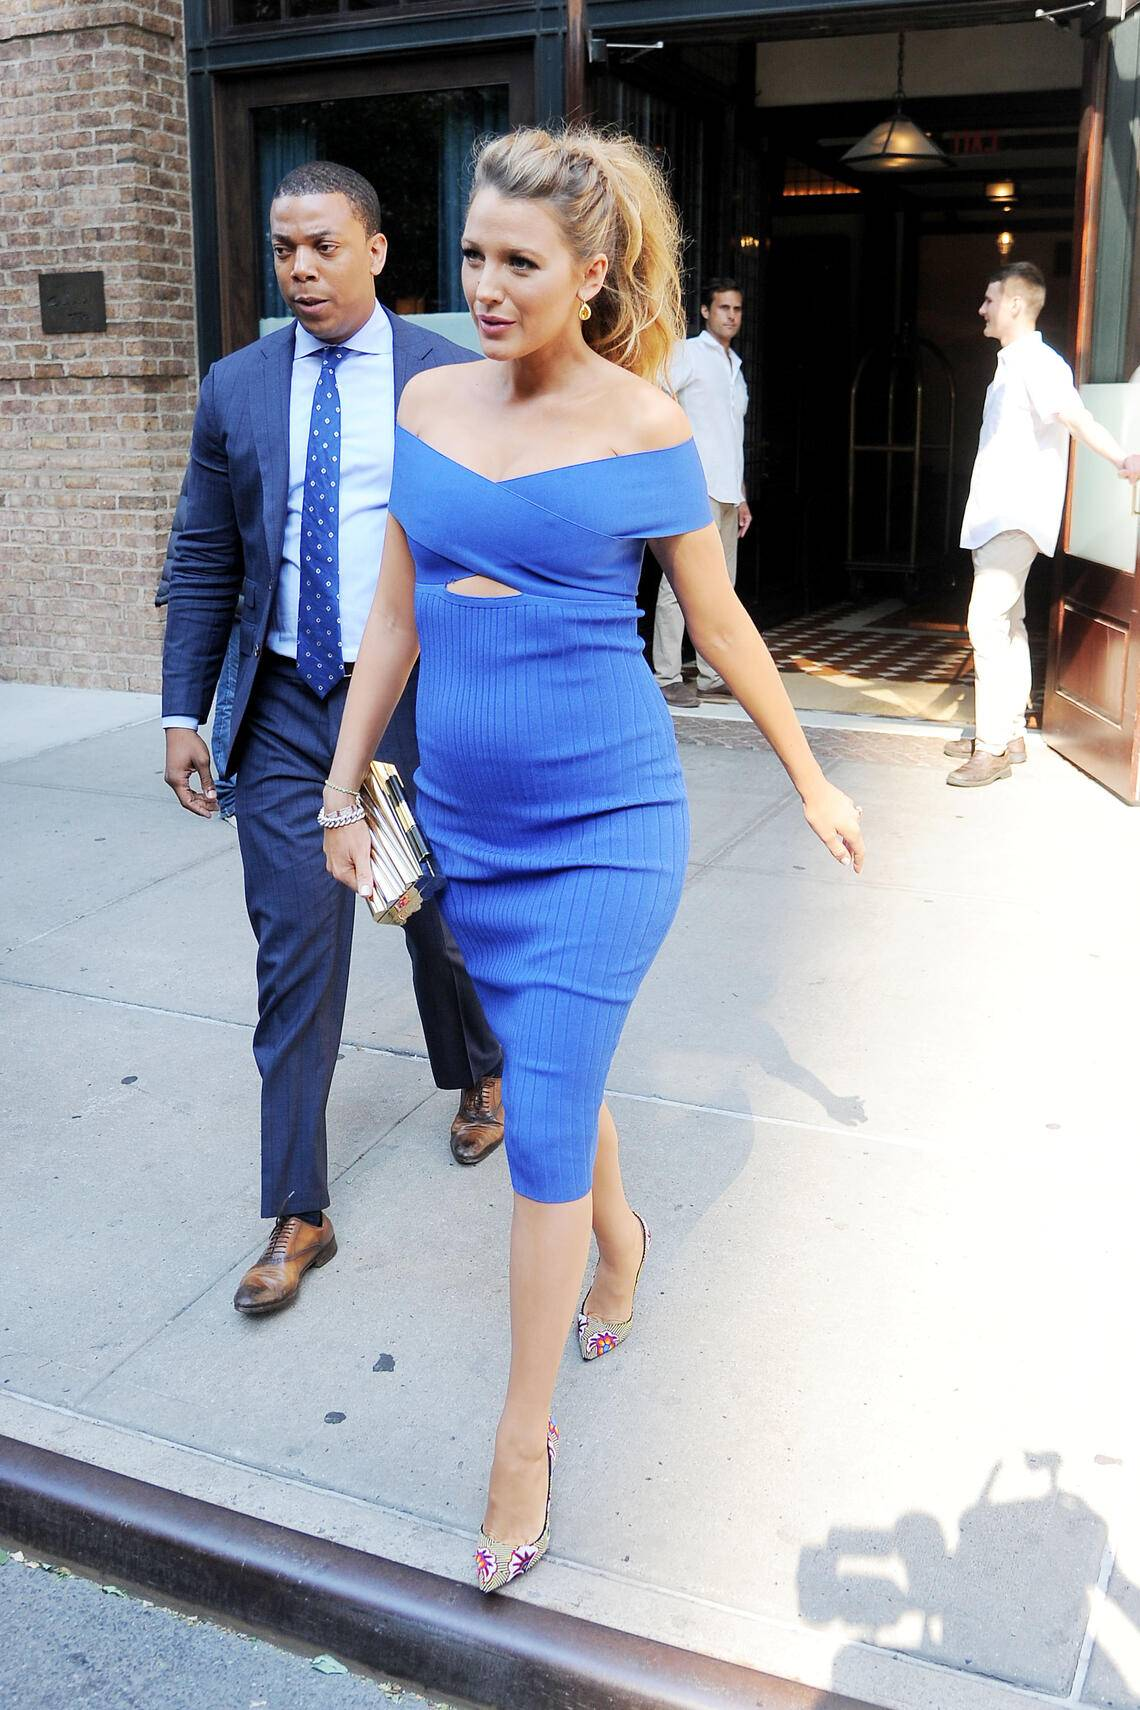 NEW YORK, NY - JUNE 20: Pregnant Blake Lively steps out in a bright blue off-the-shoulder key whole dress on June 20, 2016 in New York, NY. (Photo by Josiah Kamau/BuzzFoto via Getty Images)